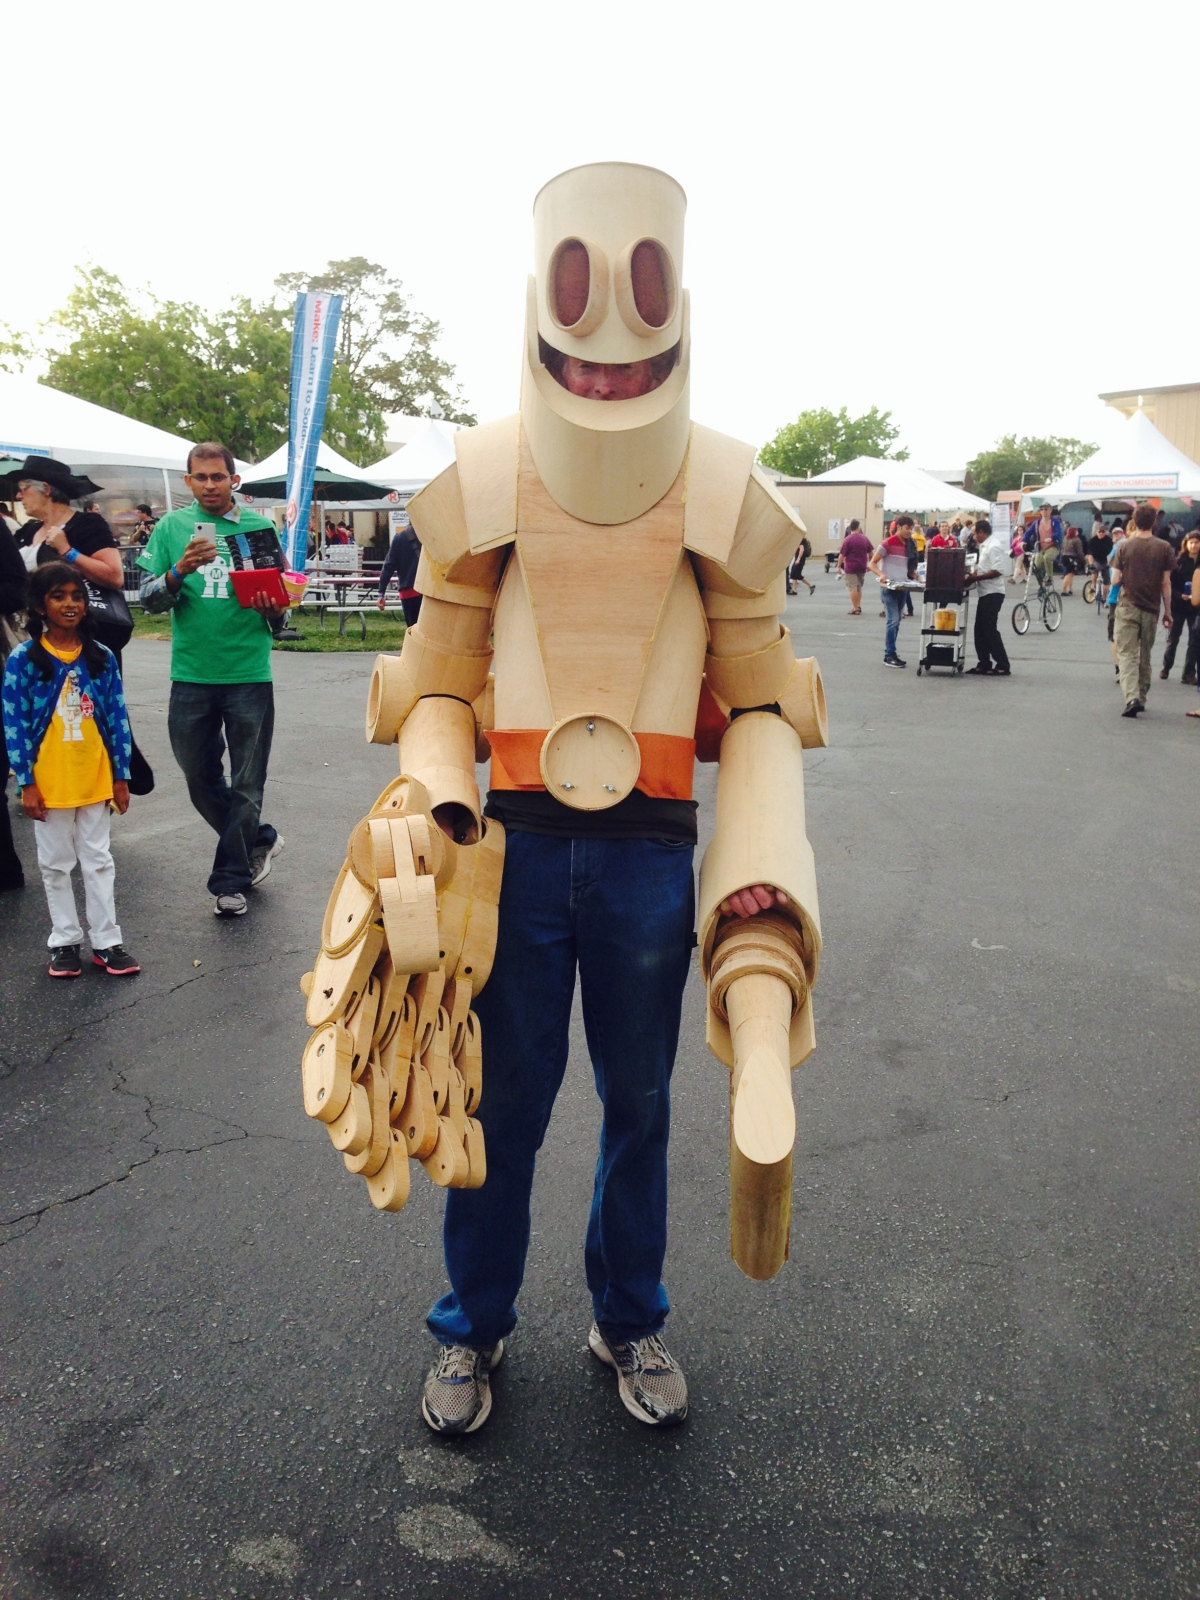 The Wooden Scarecrow